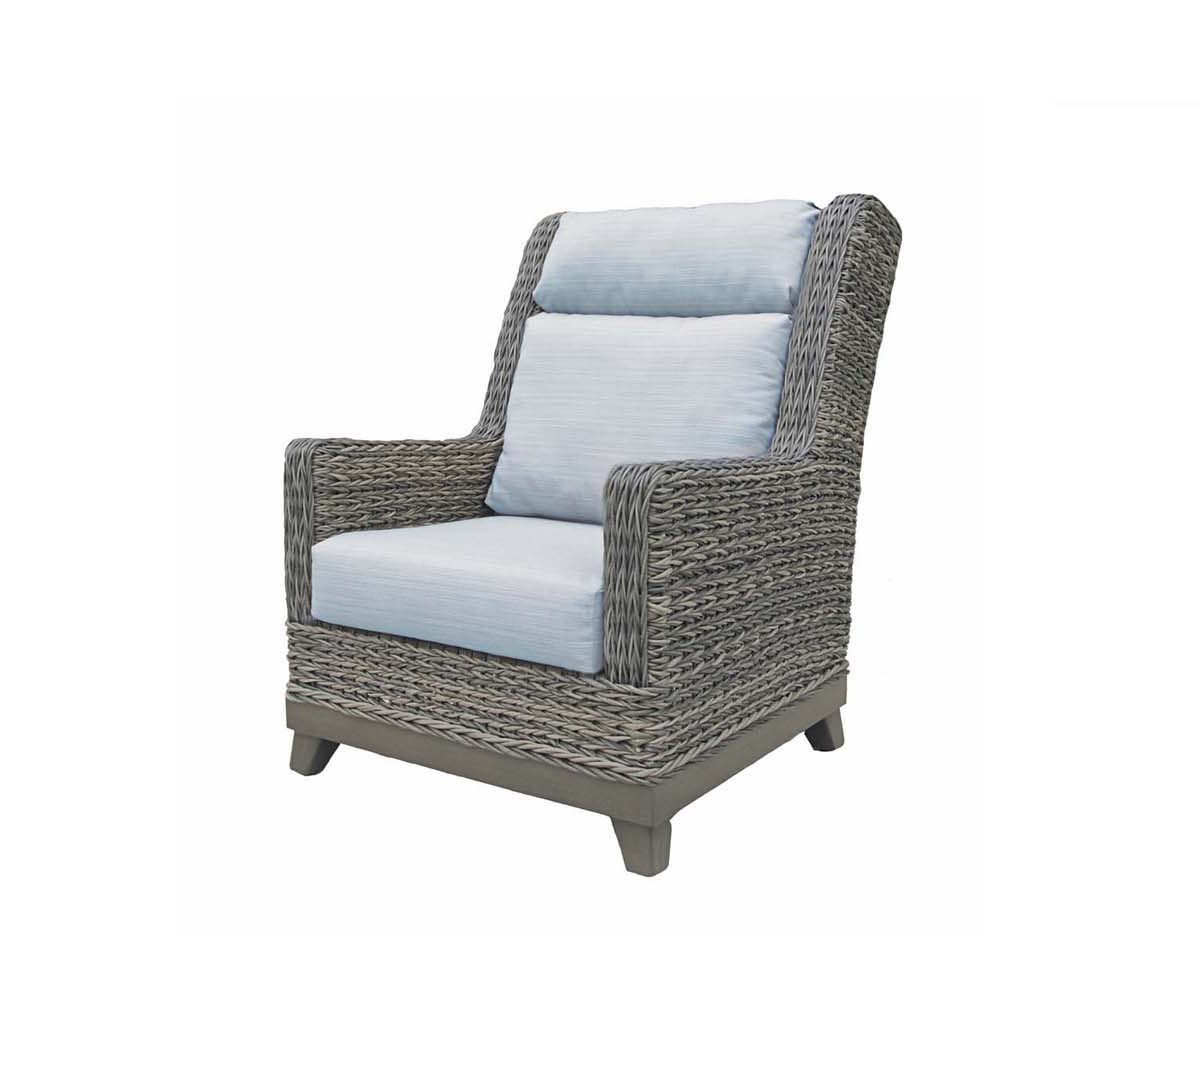 Boston highback wing chair in grey toned wicker with light blue cushions.